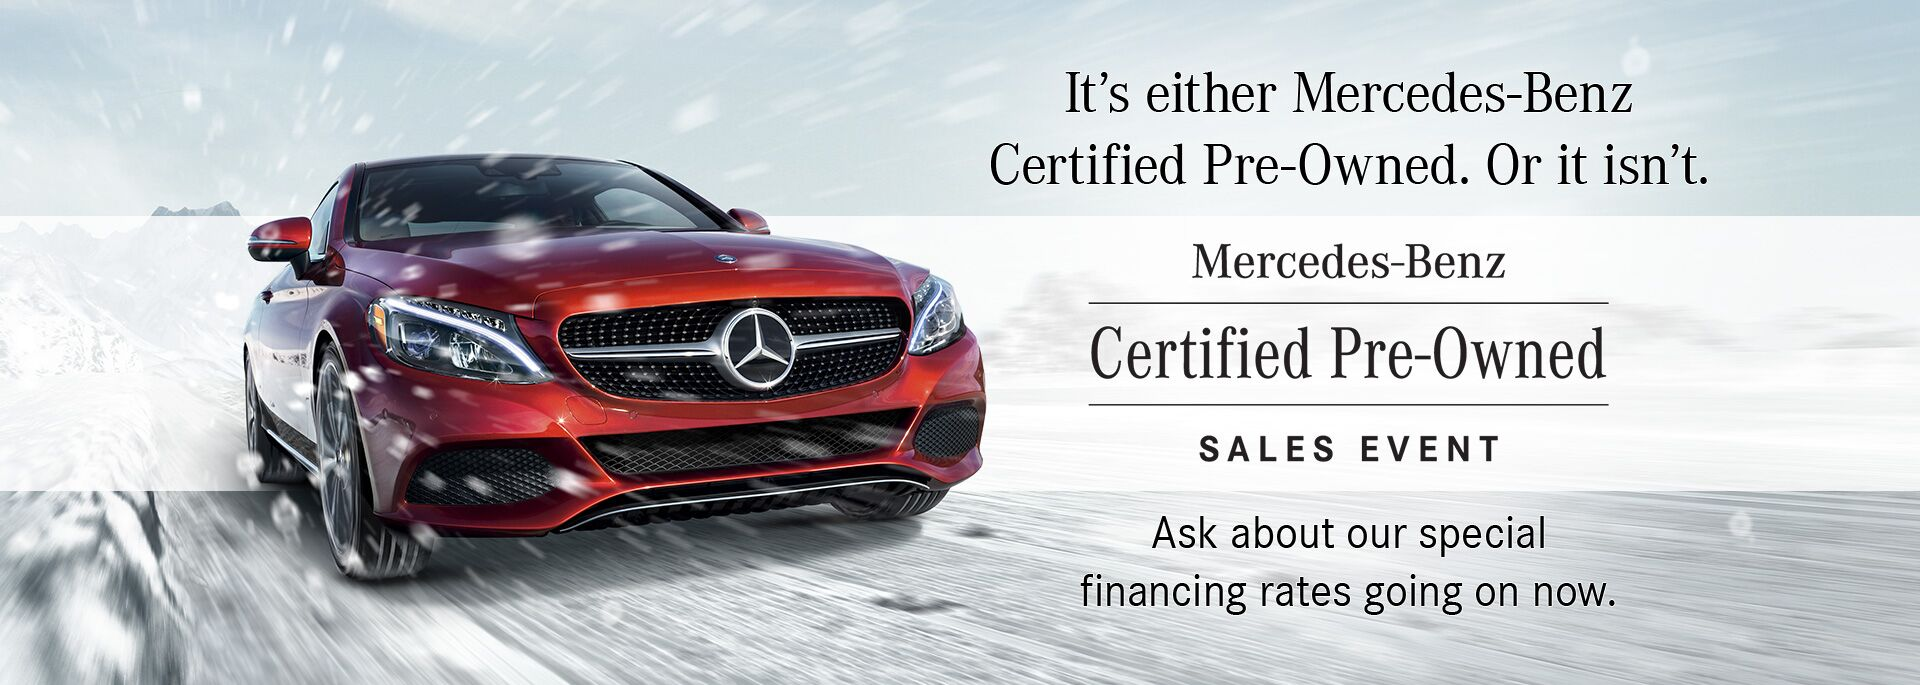 Certifed Pre-Owned